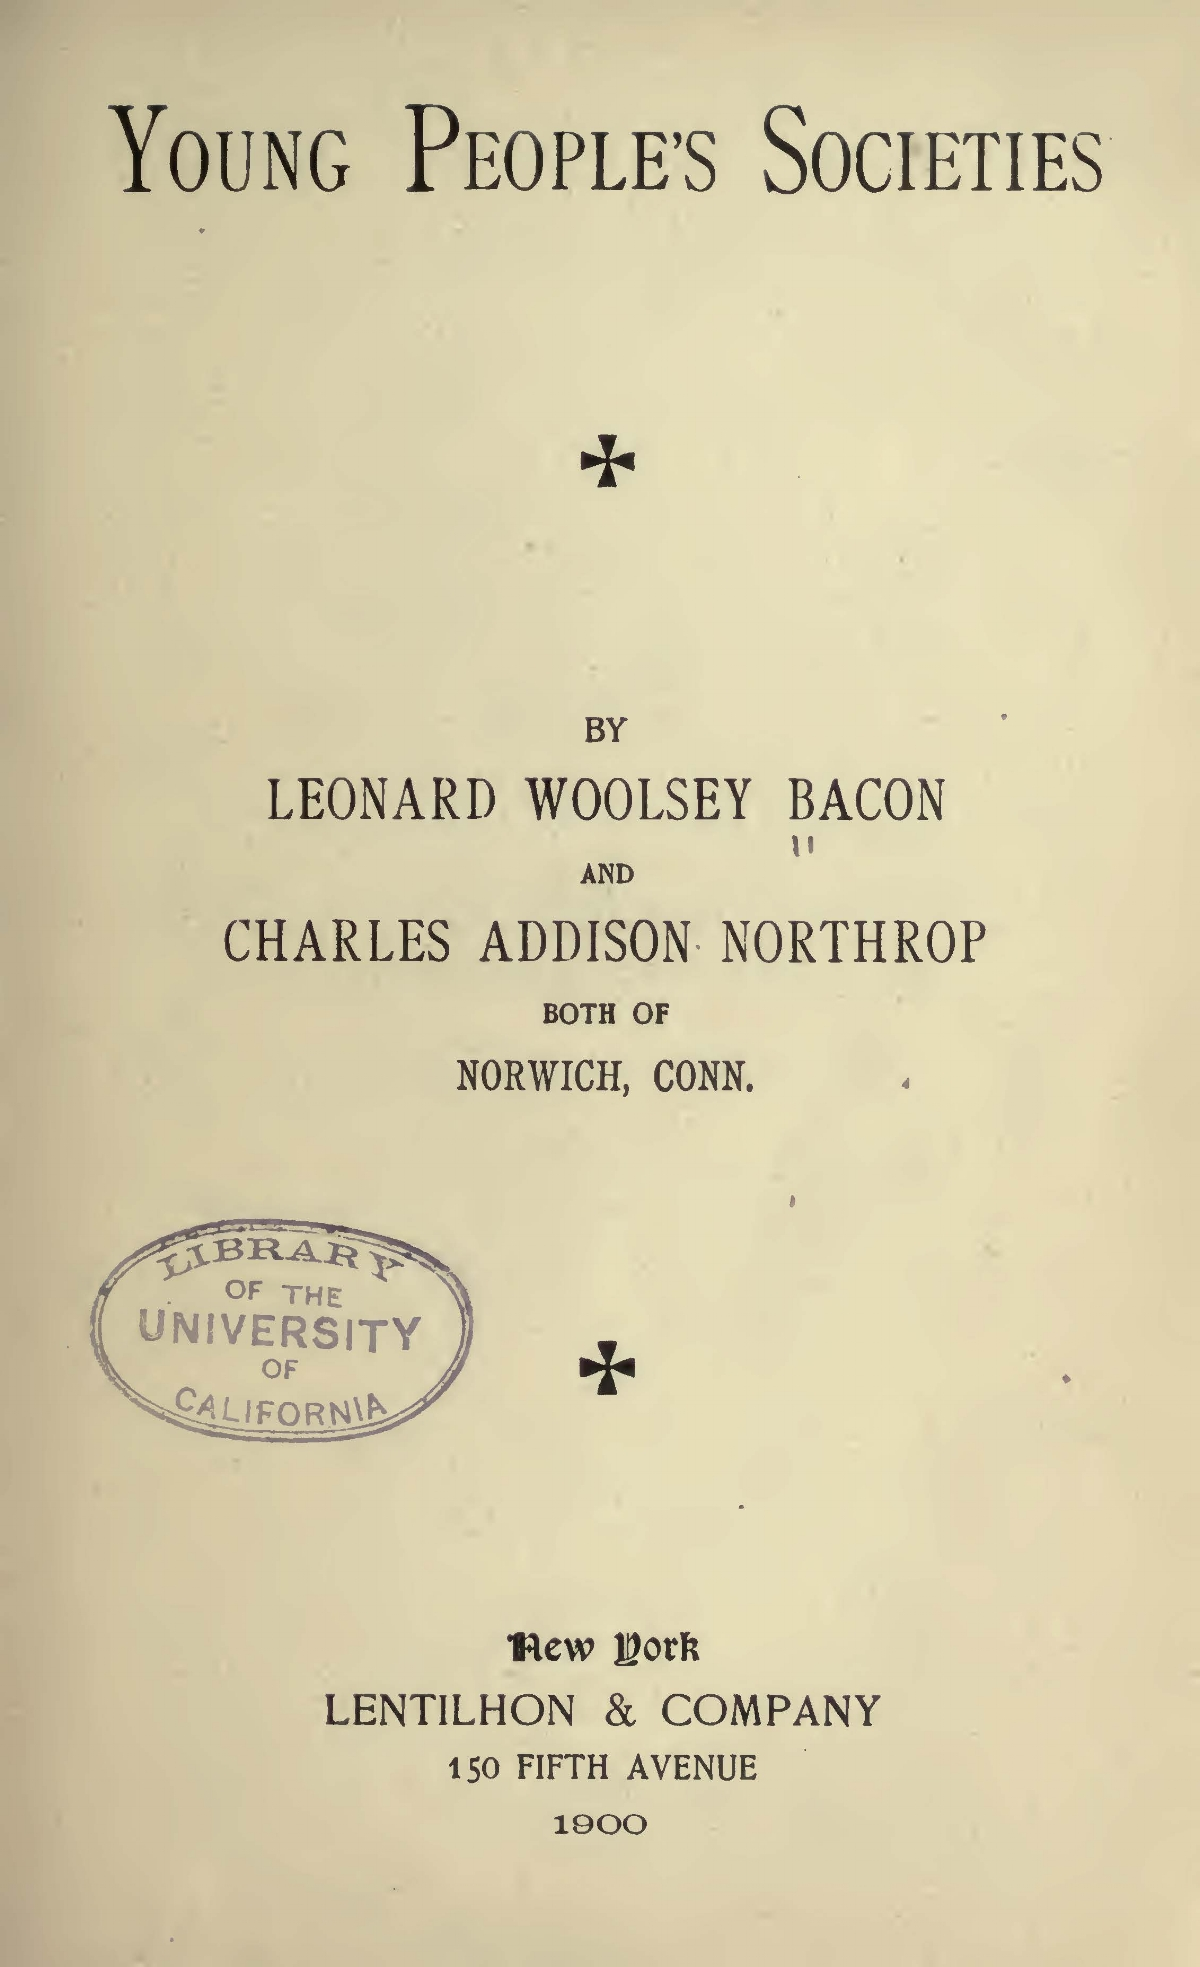 Bacon, Leonard Woolsey, Young People's Societies Title Page.jpg